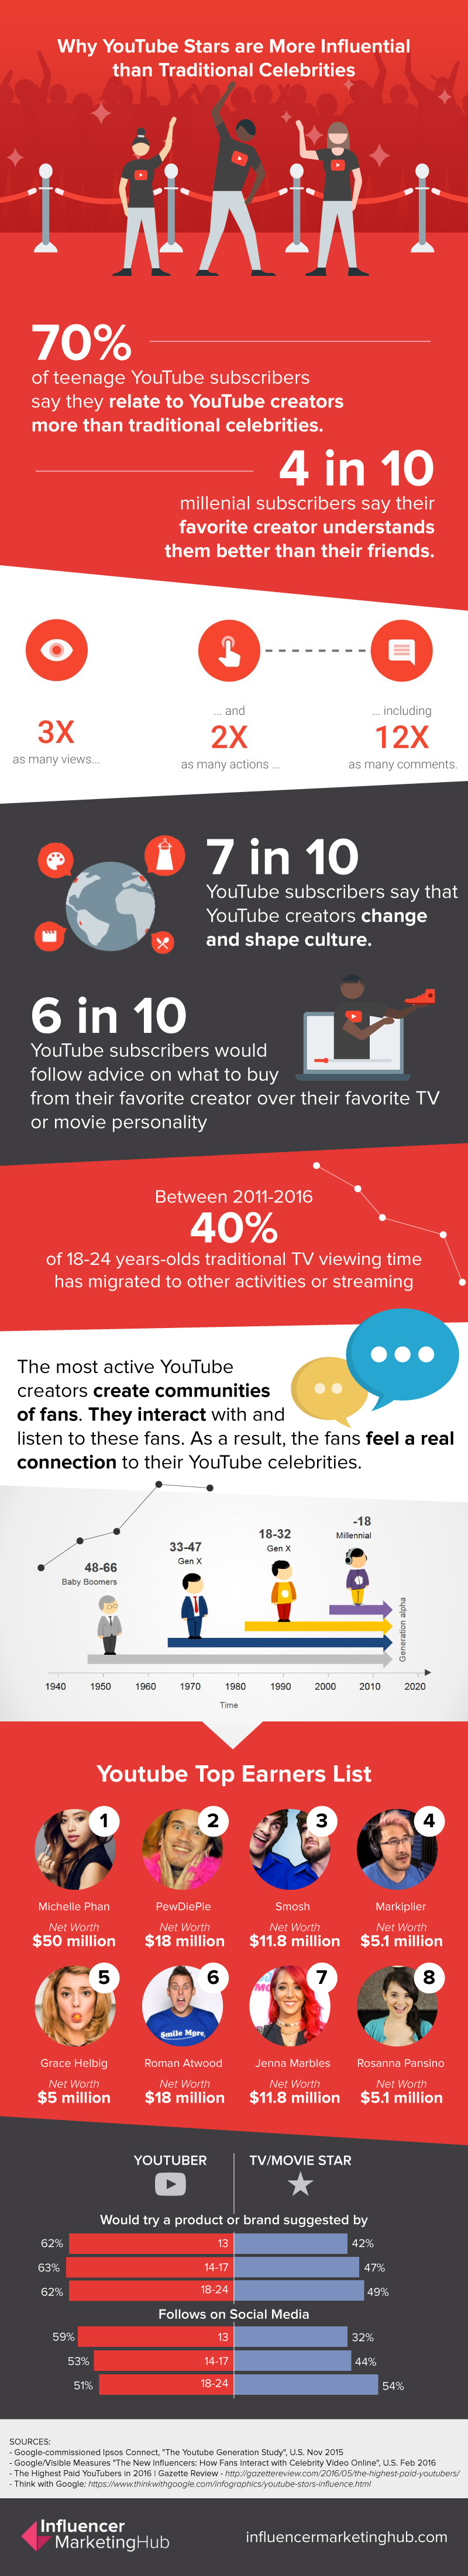 Why YouTube Stars Are More Influential Than Traditional Celebrities